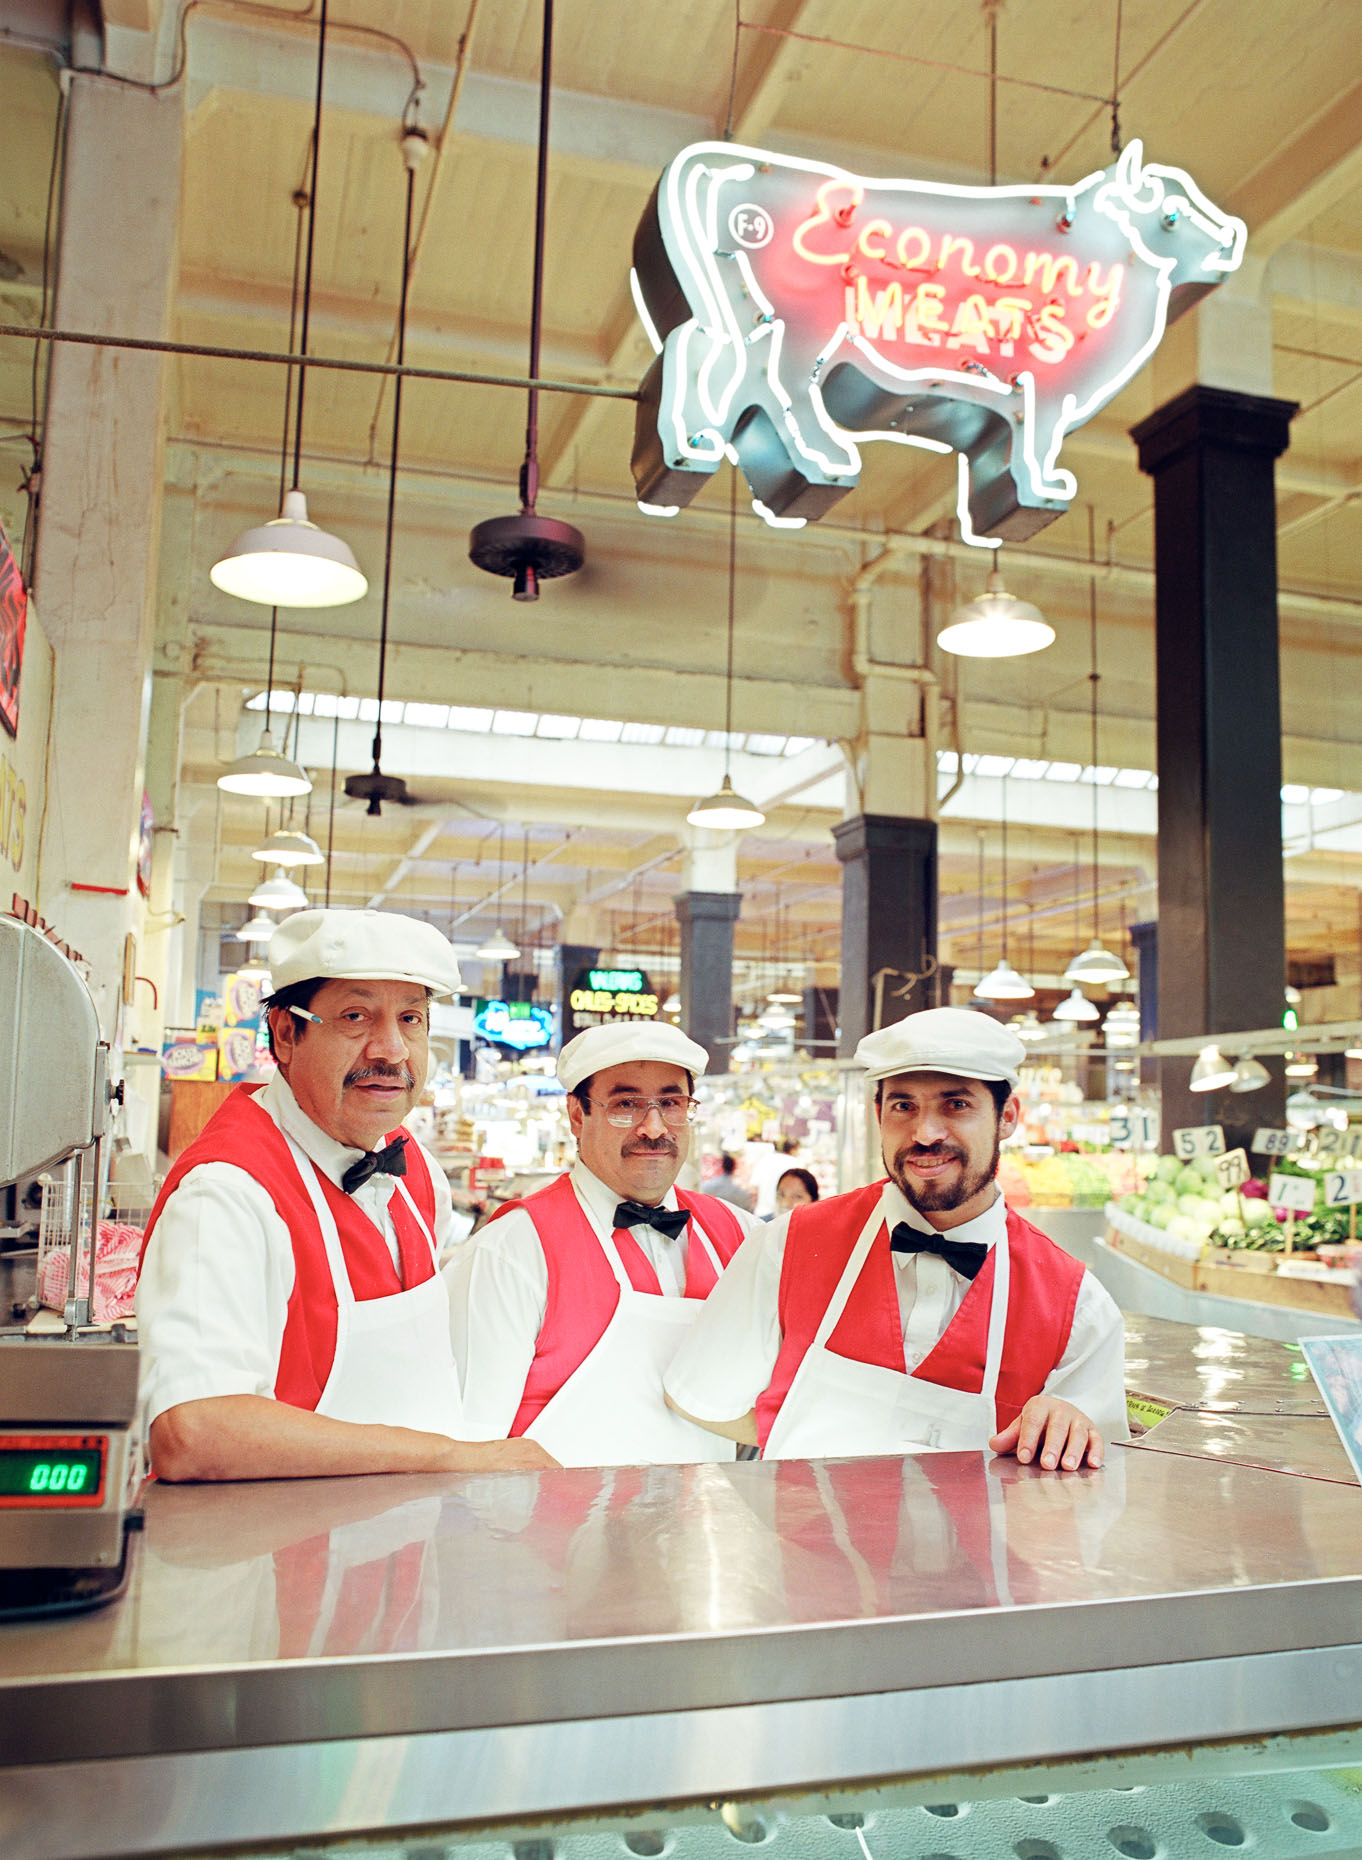 Environmental portrait of three meat butchers wearing aprons at meat market in Grand Central Market in Los Angeles, California with neon ECONOMY MEATS sign overhead.